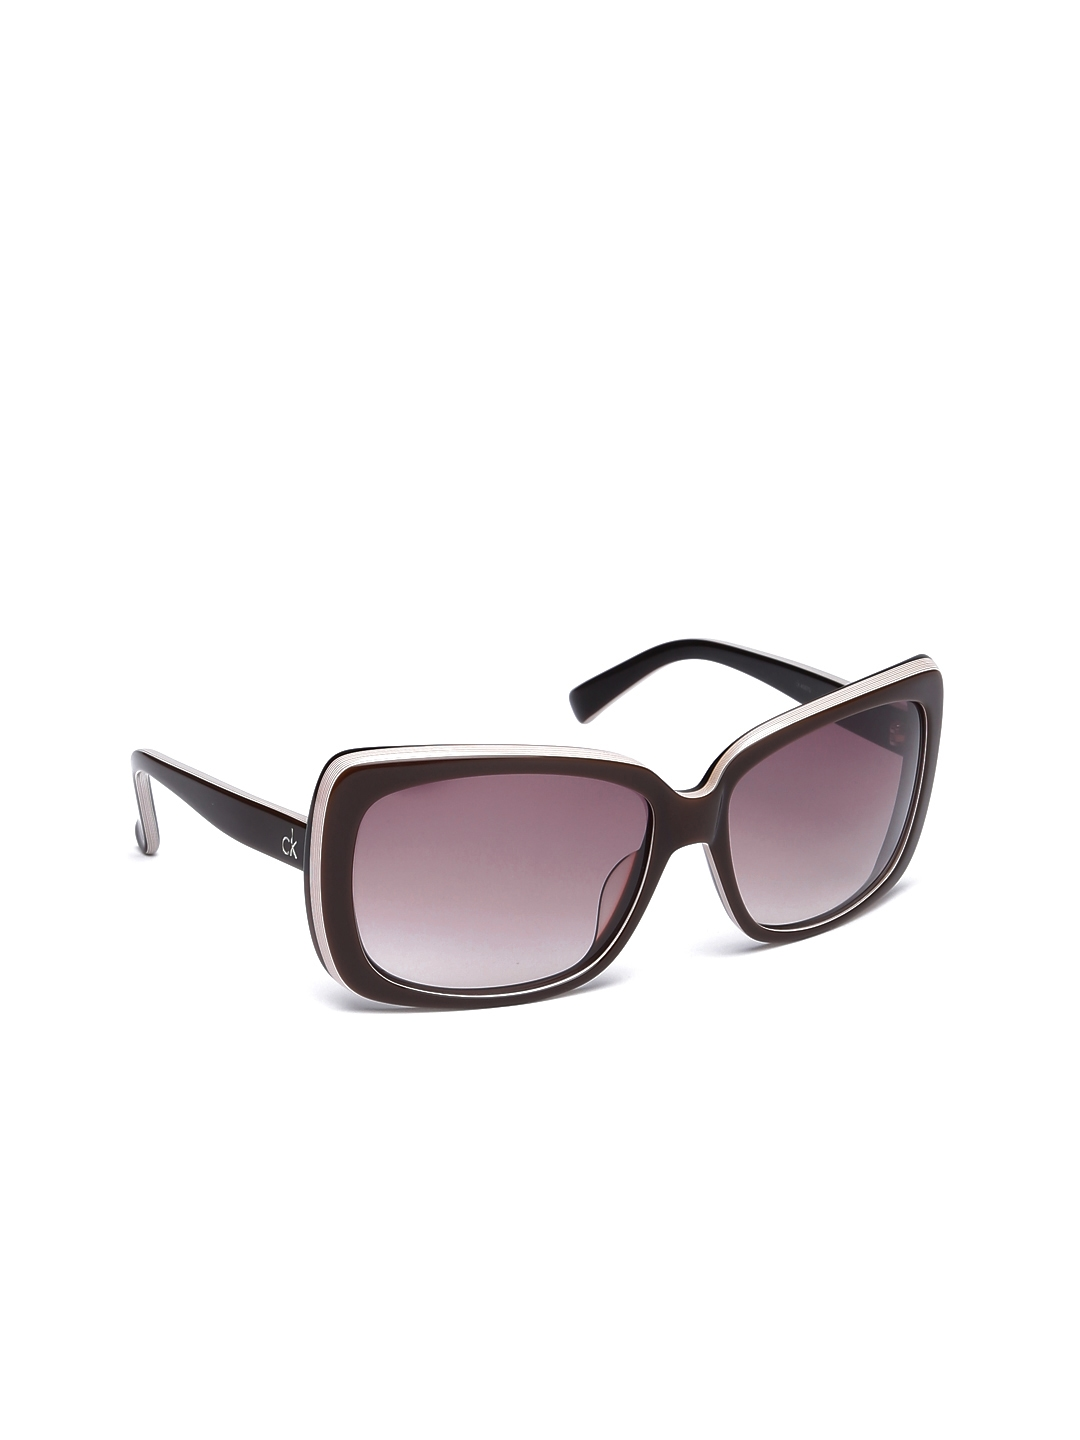 07544bd1a48 Buy Calvin Klein Women Square Sunglasses Ck 4087 196 S - Sunglasses ...